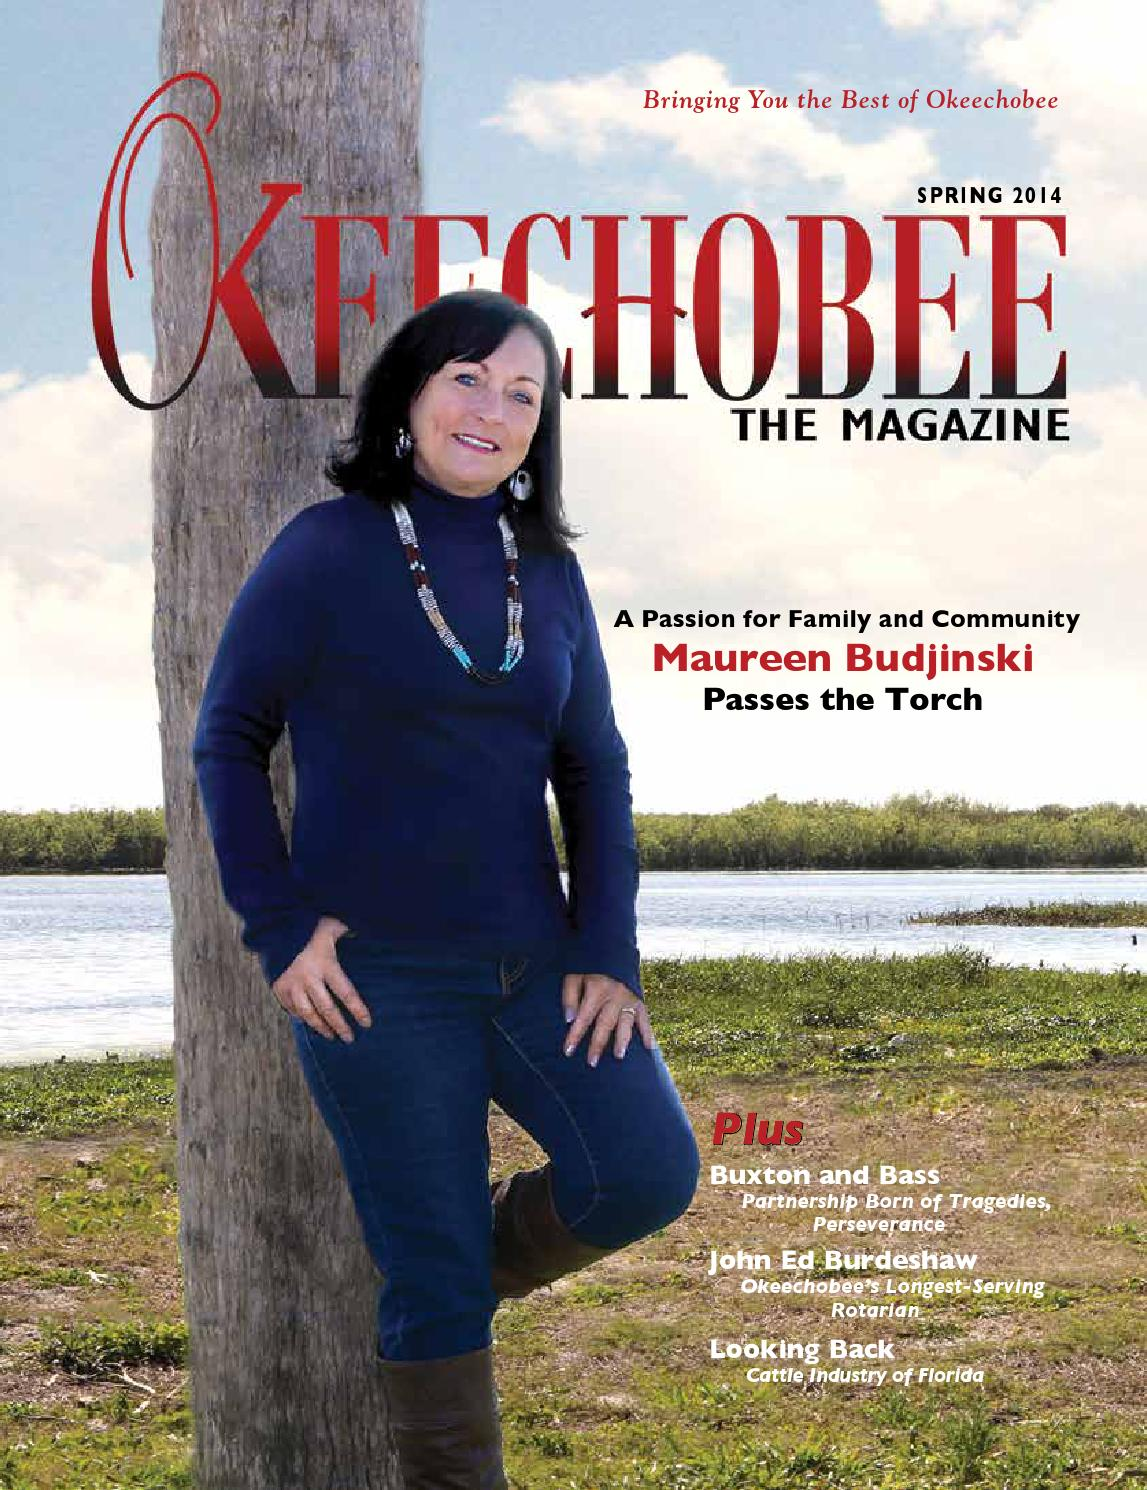 Okeechobee The Magazine Spring 2014 by Okeechobee The